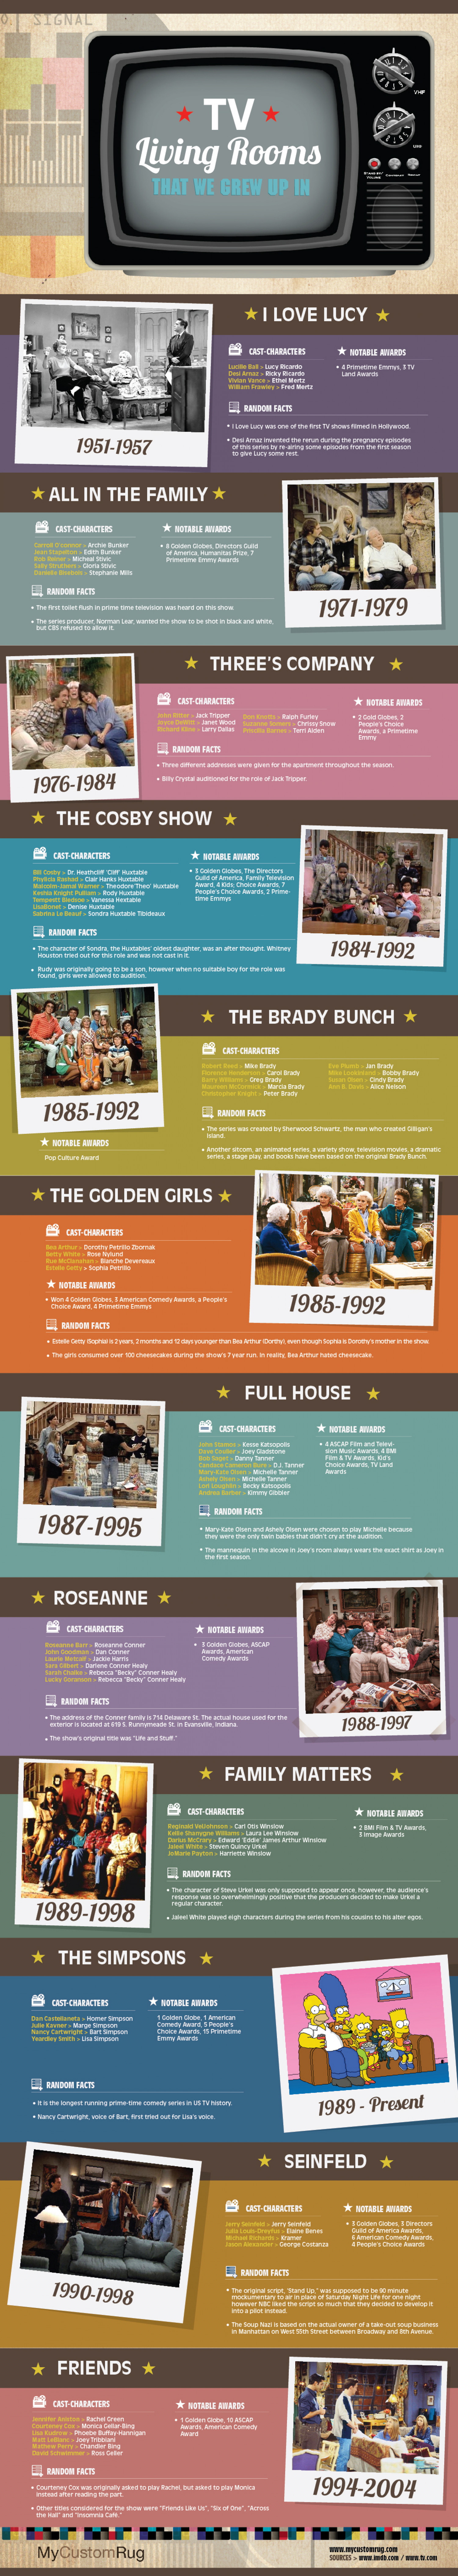 TV Living Rooms That We Grew Up In Infographic